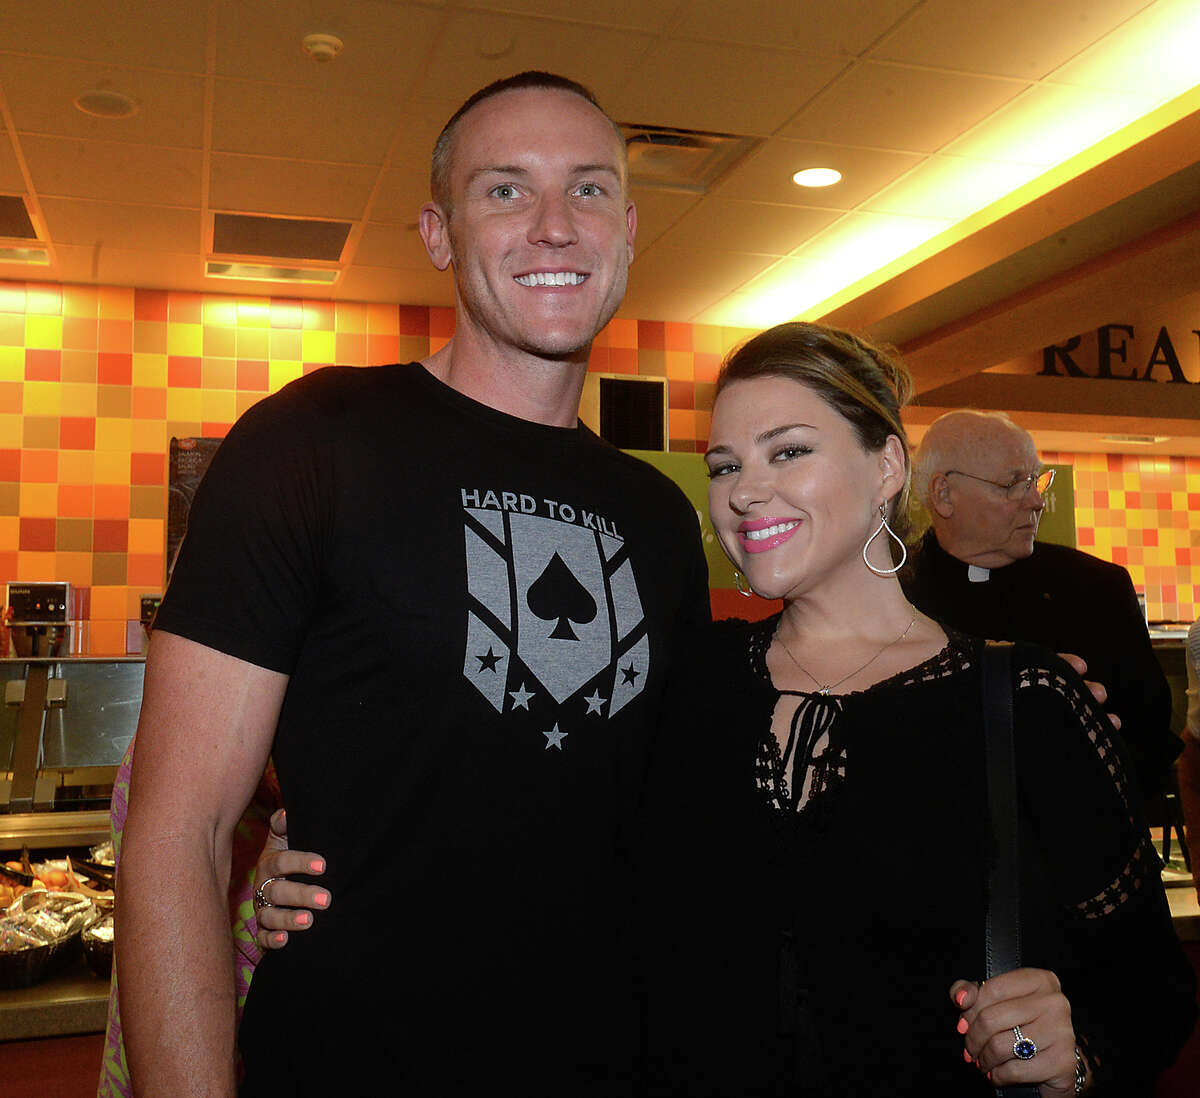 Cole Butler and Summer Penland were at the meet and greet rally for famous race car driver Mario Andretti at Jason's Deli in the Gateway Plaza Thursday. The event was the first social stop for Andretti, who was the celebrity host at this year's Champagne and Ribs fundraising gala Thursday night. Photo taken Thursday, April 20, 2017 Kim Brent/The Enterprise